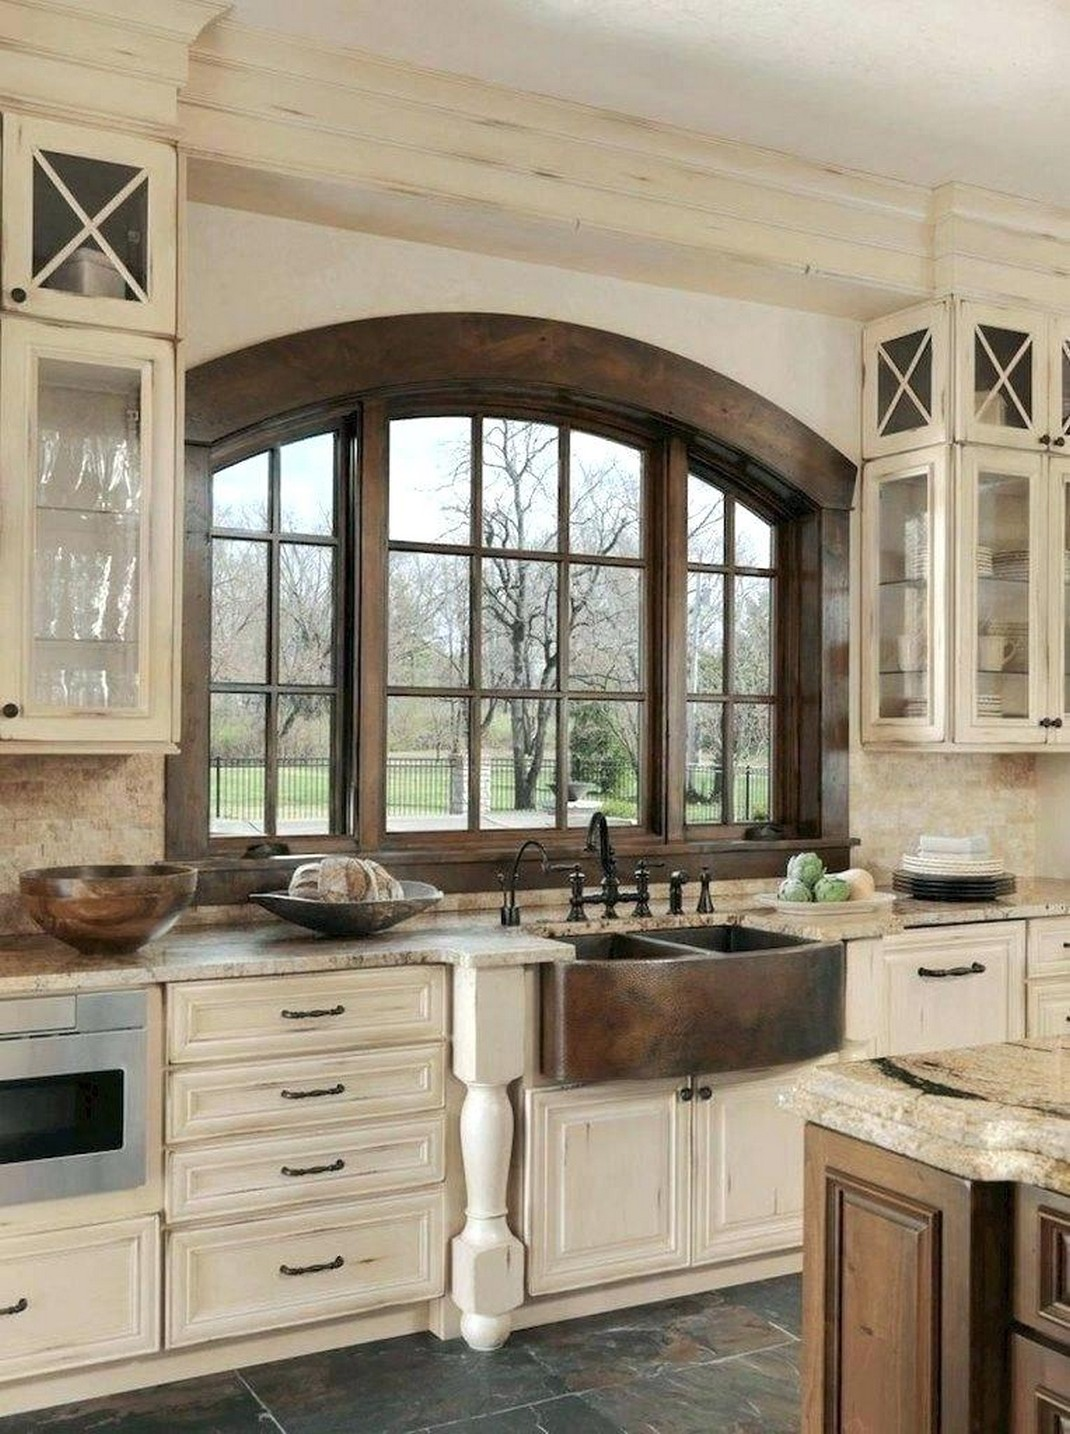 Awesome Renovation Concept of Kitchen You Must Know